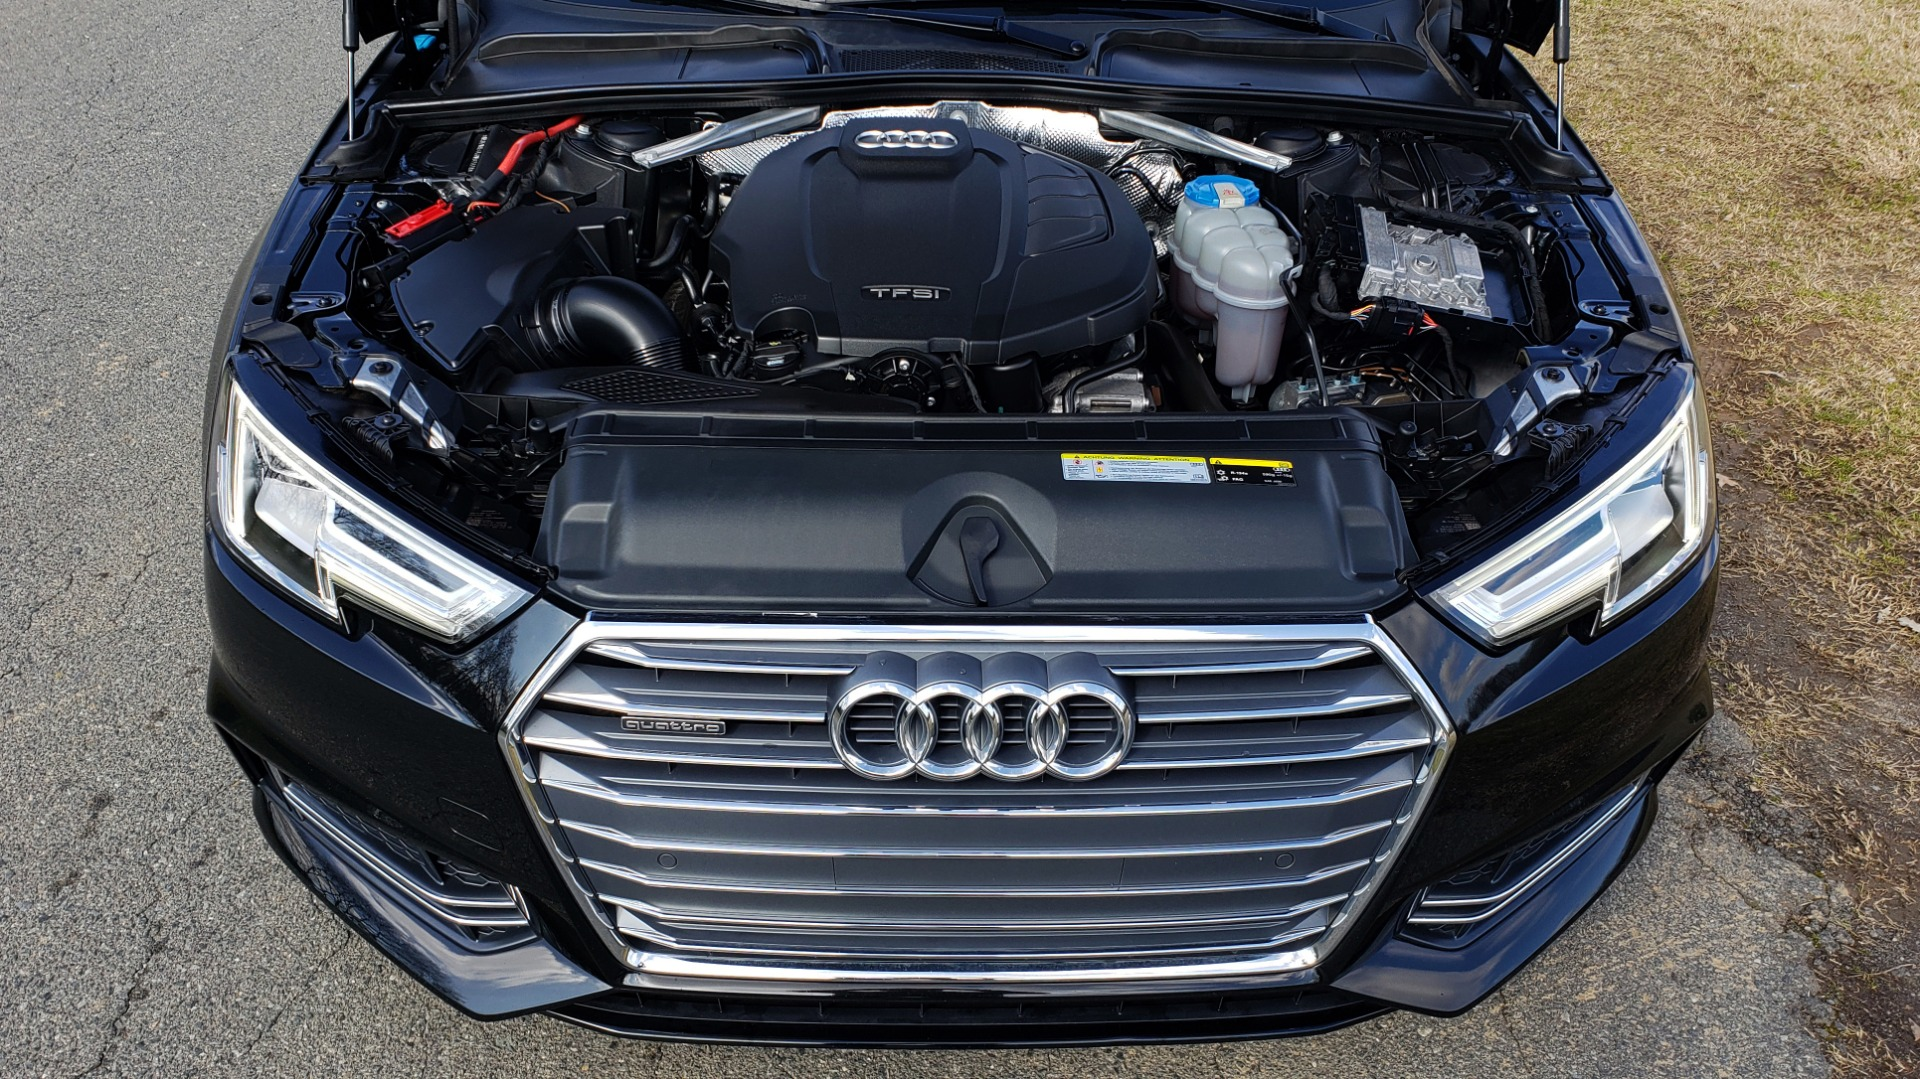 Used 2017 Audi A4 PREMIUM PLUS 2.0T / TECH / NAV / CLD WTHR / SUNROOF / REARVIEW for sale Sold at Formula Imports in Charlotte NC 28227 10